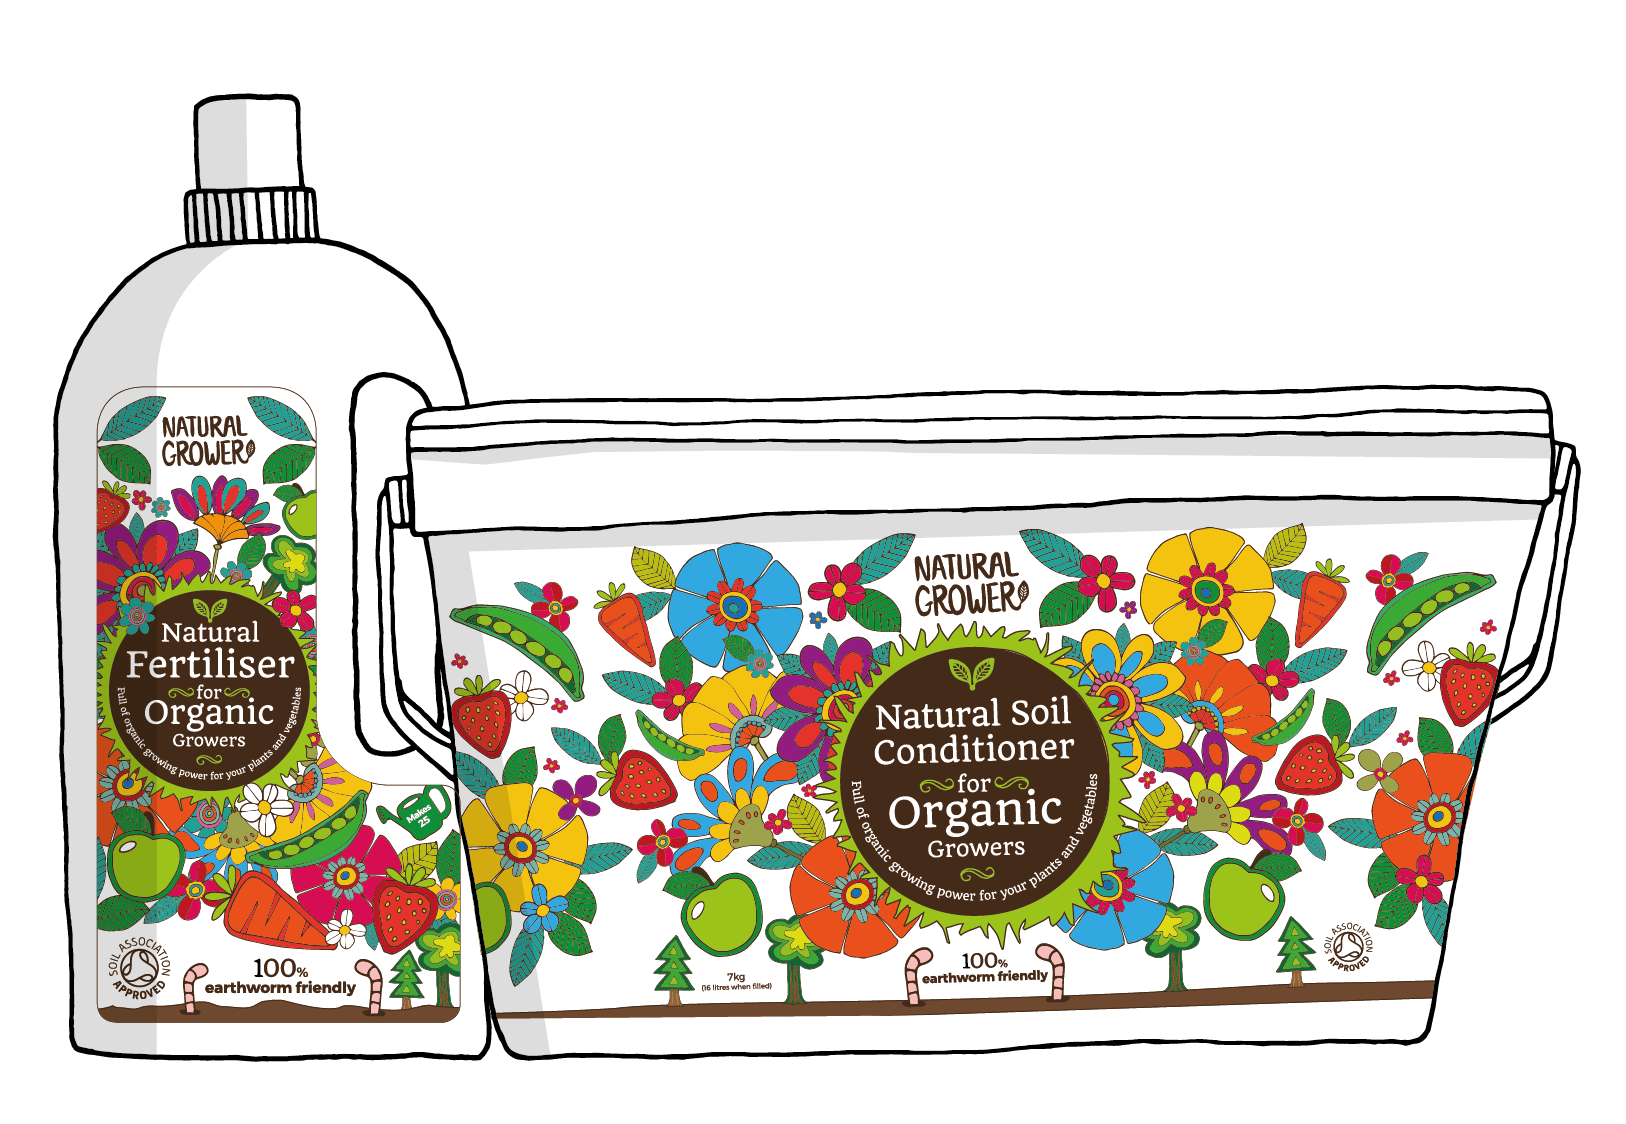 Natural Grower Products